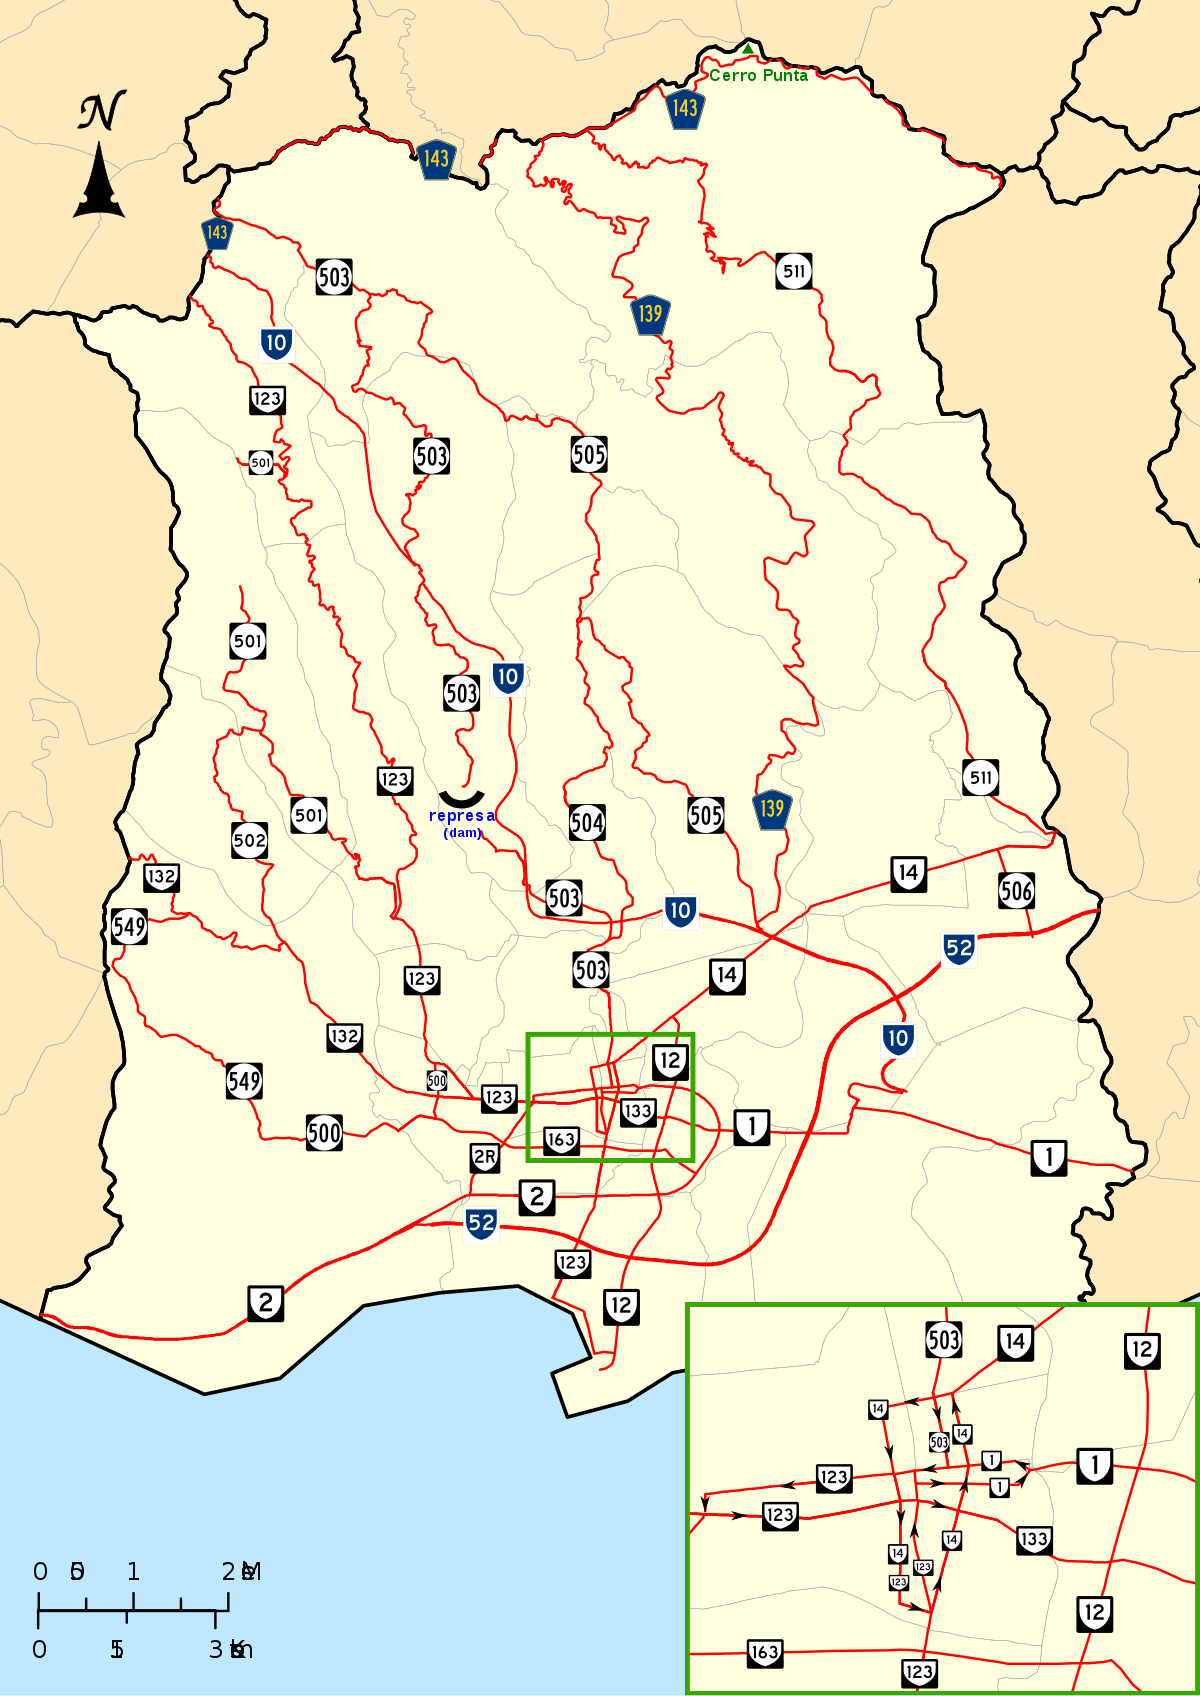 1200x1696 List Of Roads In Ponce, Puerto Rico